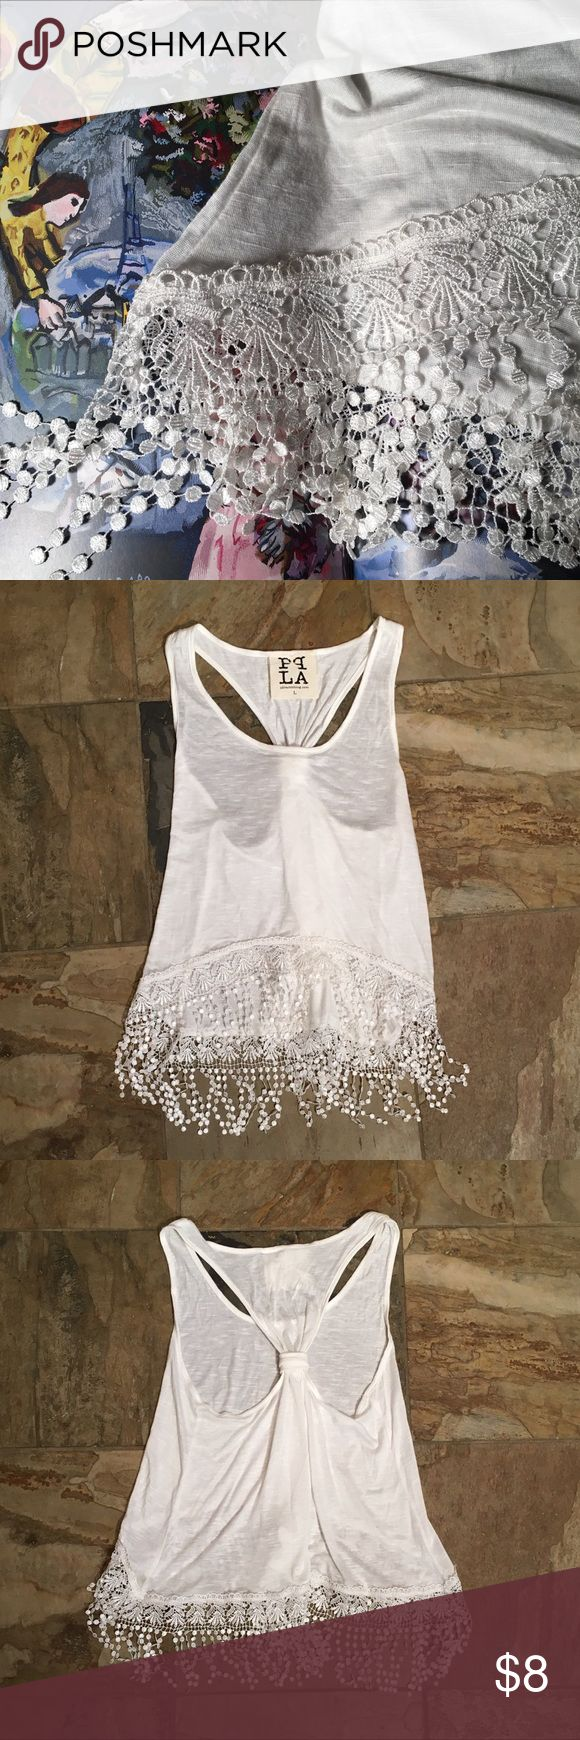 Lace Fringe Tank Top This is a white lace fringe tank top.  The top is very soft, almost sheer and gathered in back.  4.5in Lace fringe is delicate looking and in excellent condition.  Size: Junior LARGE 100% Rayon Hand wash cold Smoke Free Home PQ LA Tops Tank Tops